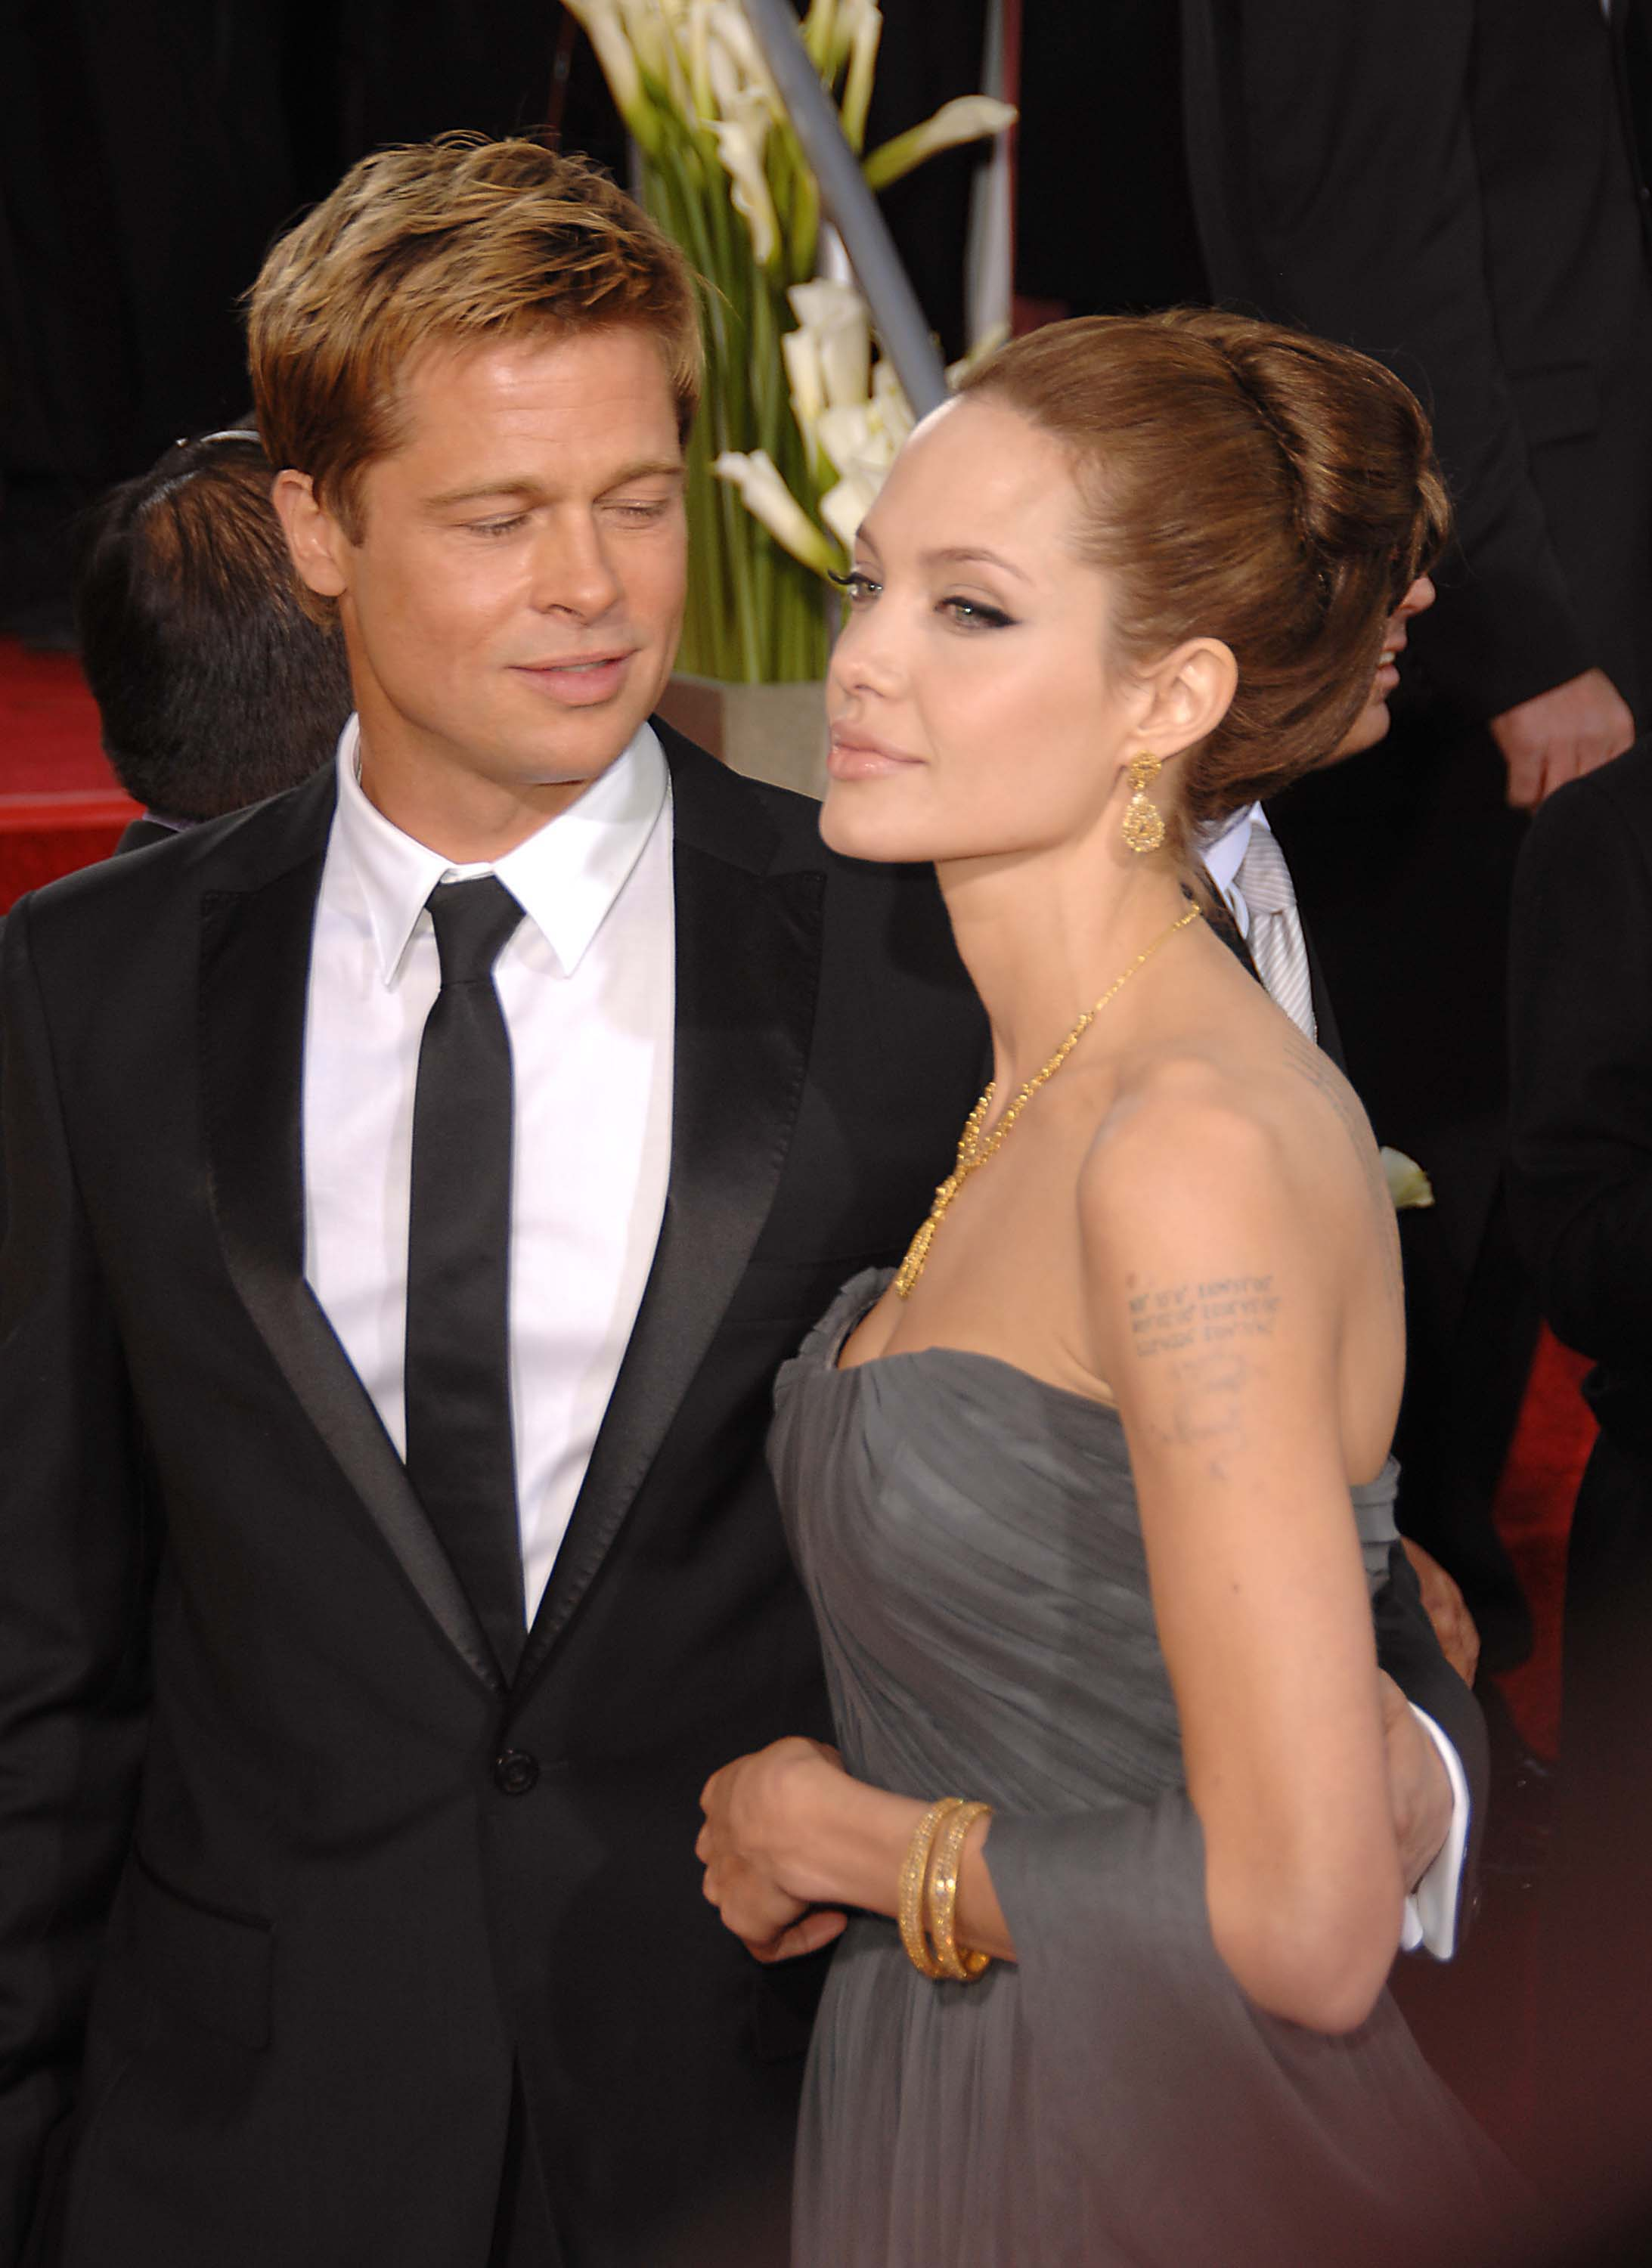 Brad Pitt was in awe of Angelina Jolie at the 2007 Golden Globe Awards in LA.